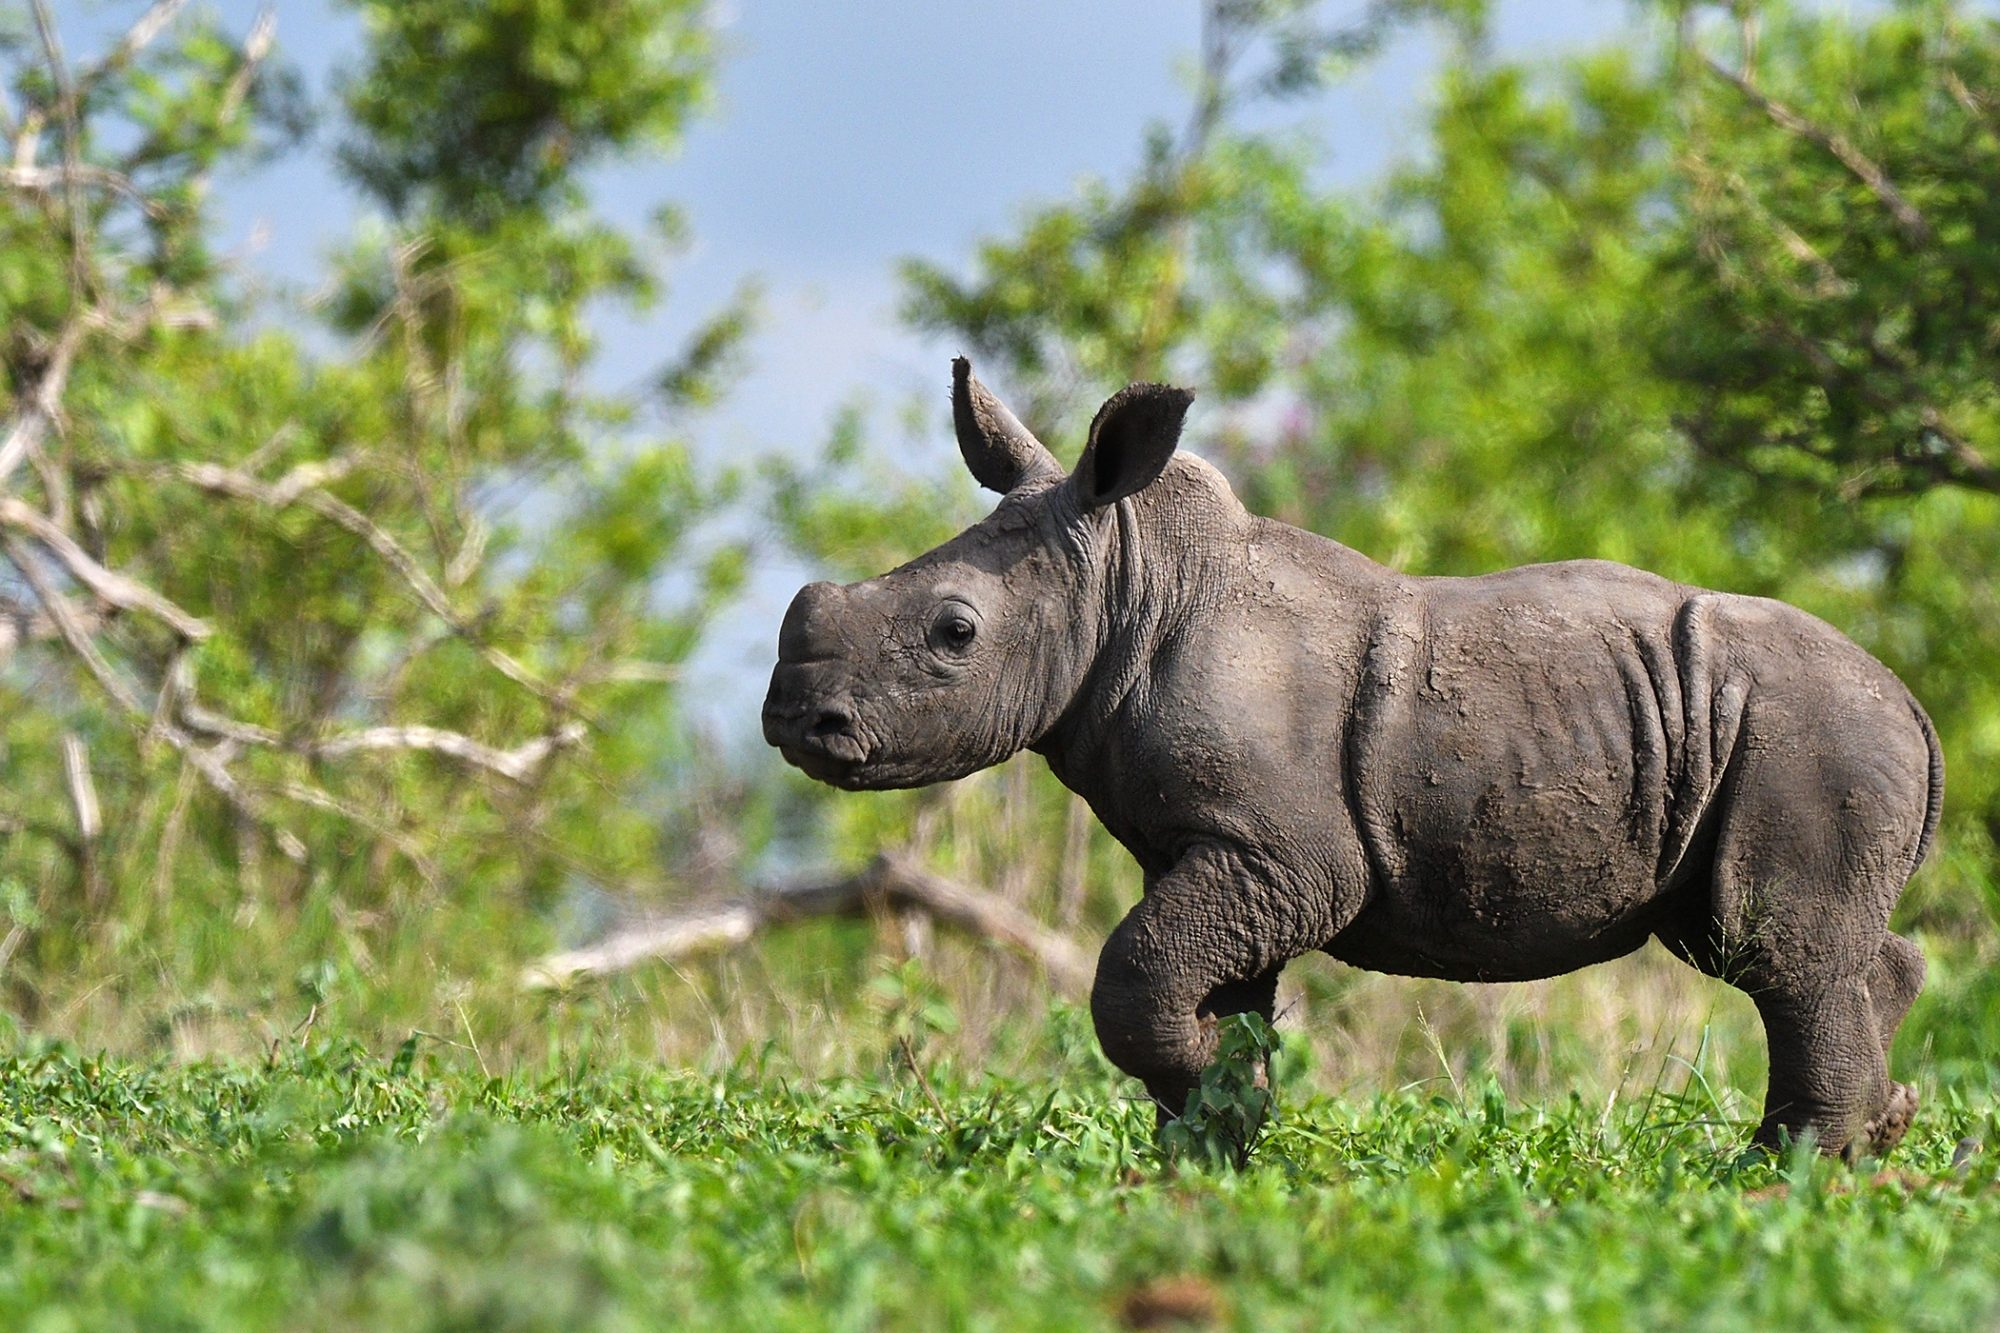 Side profile of baby rhino walking through grass